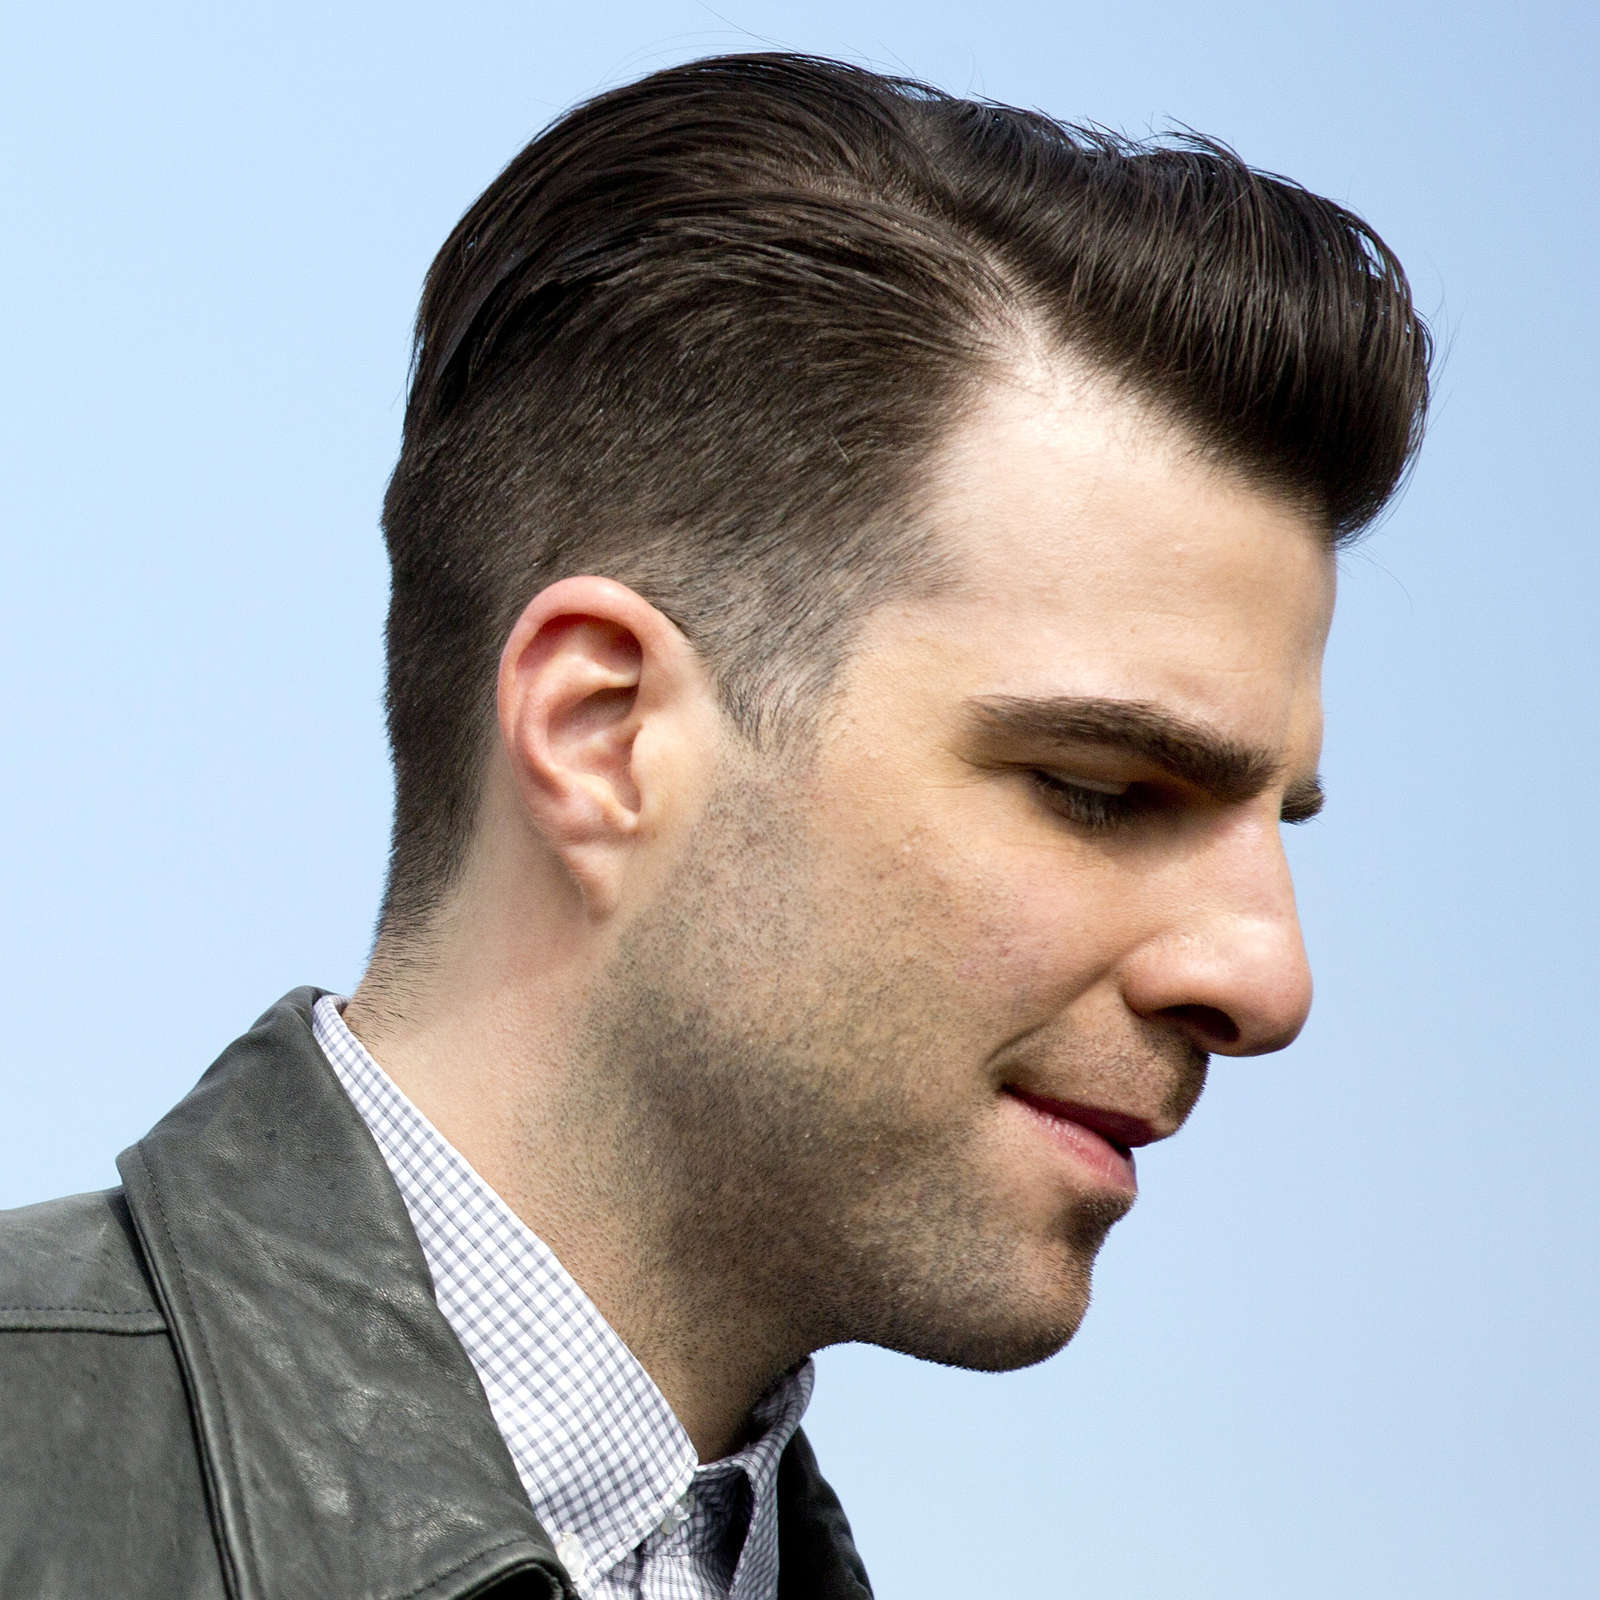 styling hair men 50 pompadour hairstyle variations comprehensive guide 6136 | Zachary Quinto pompadour